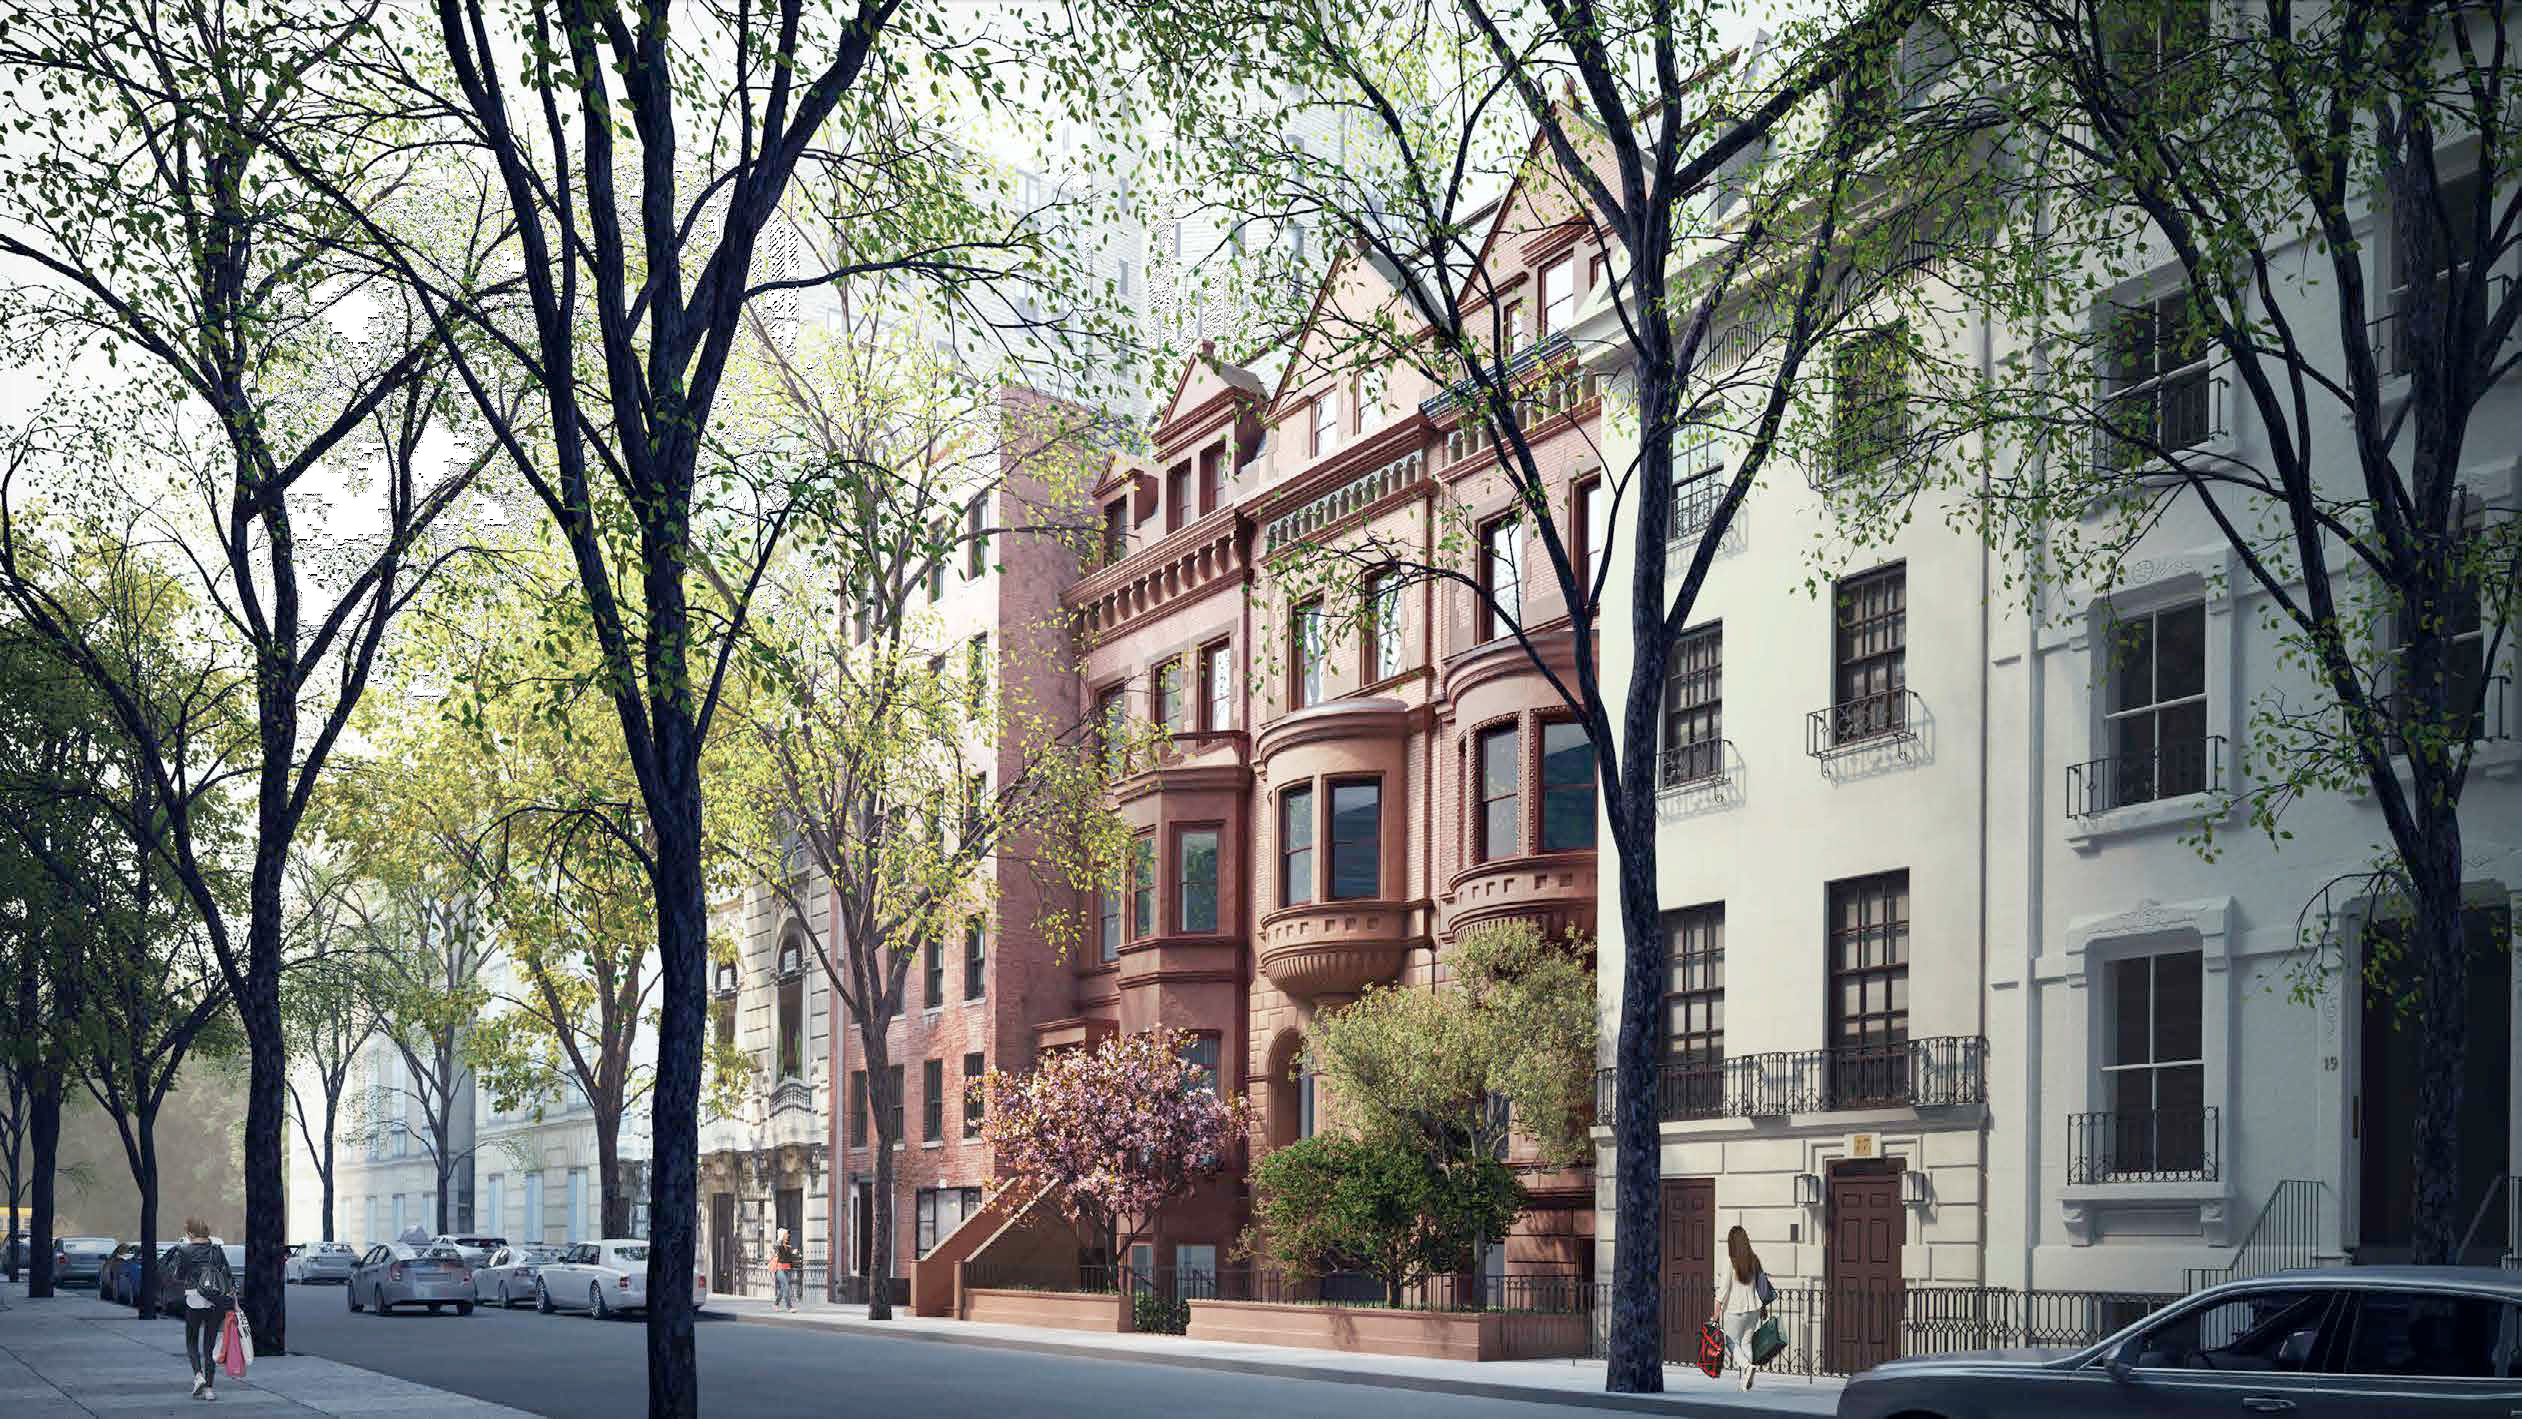 Previous proposal for 11-15 East 75th Street